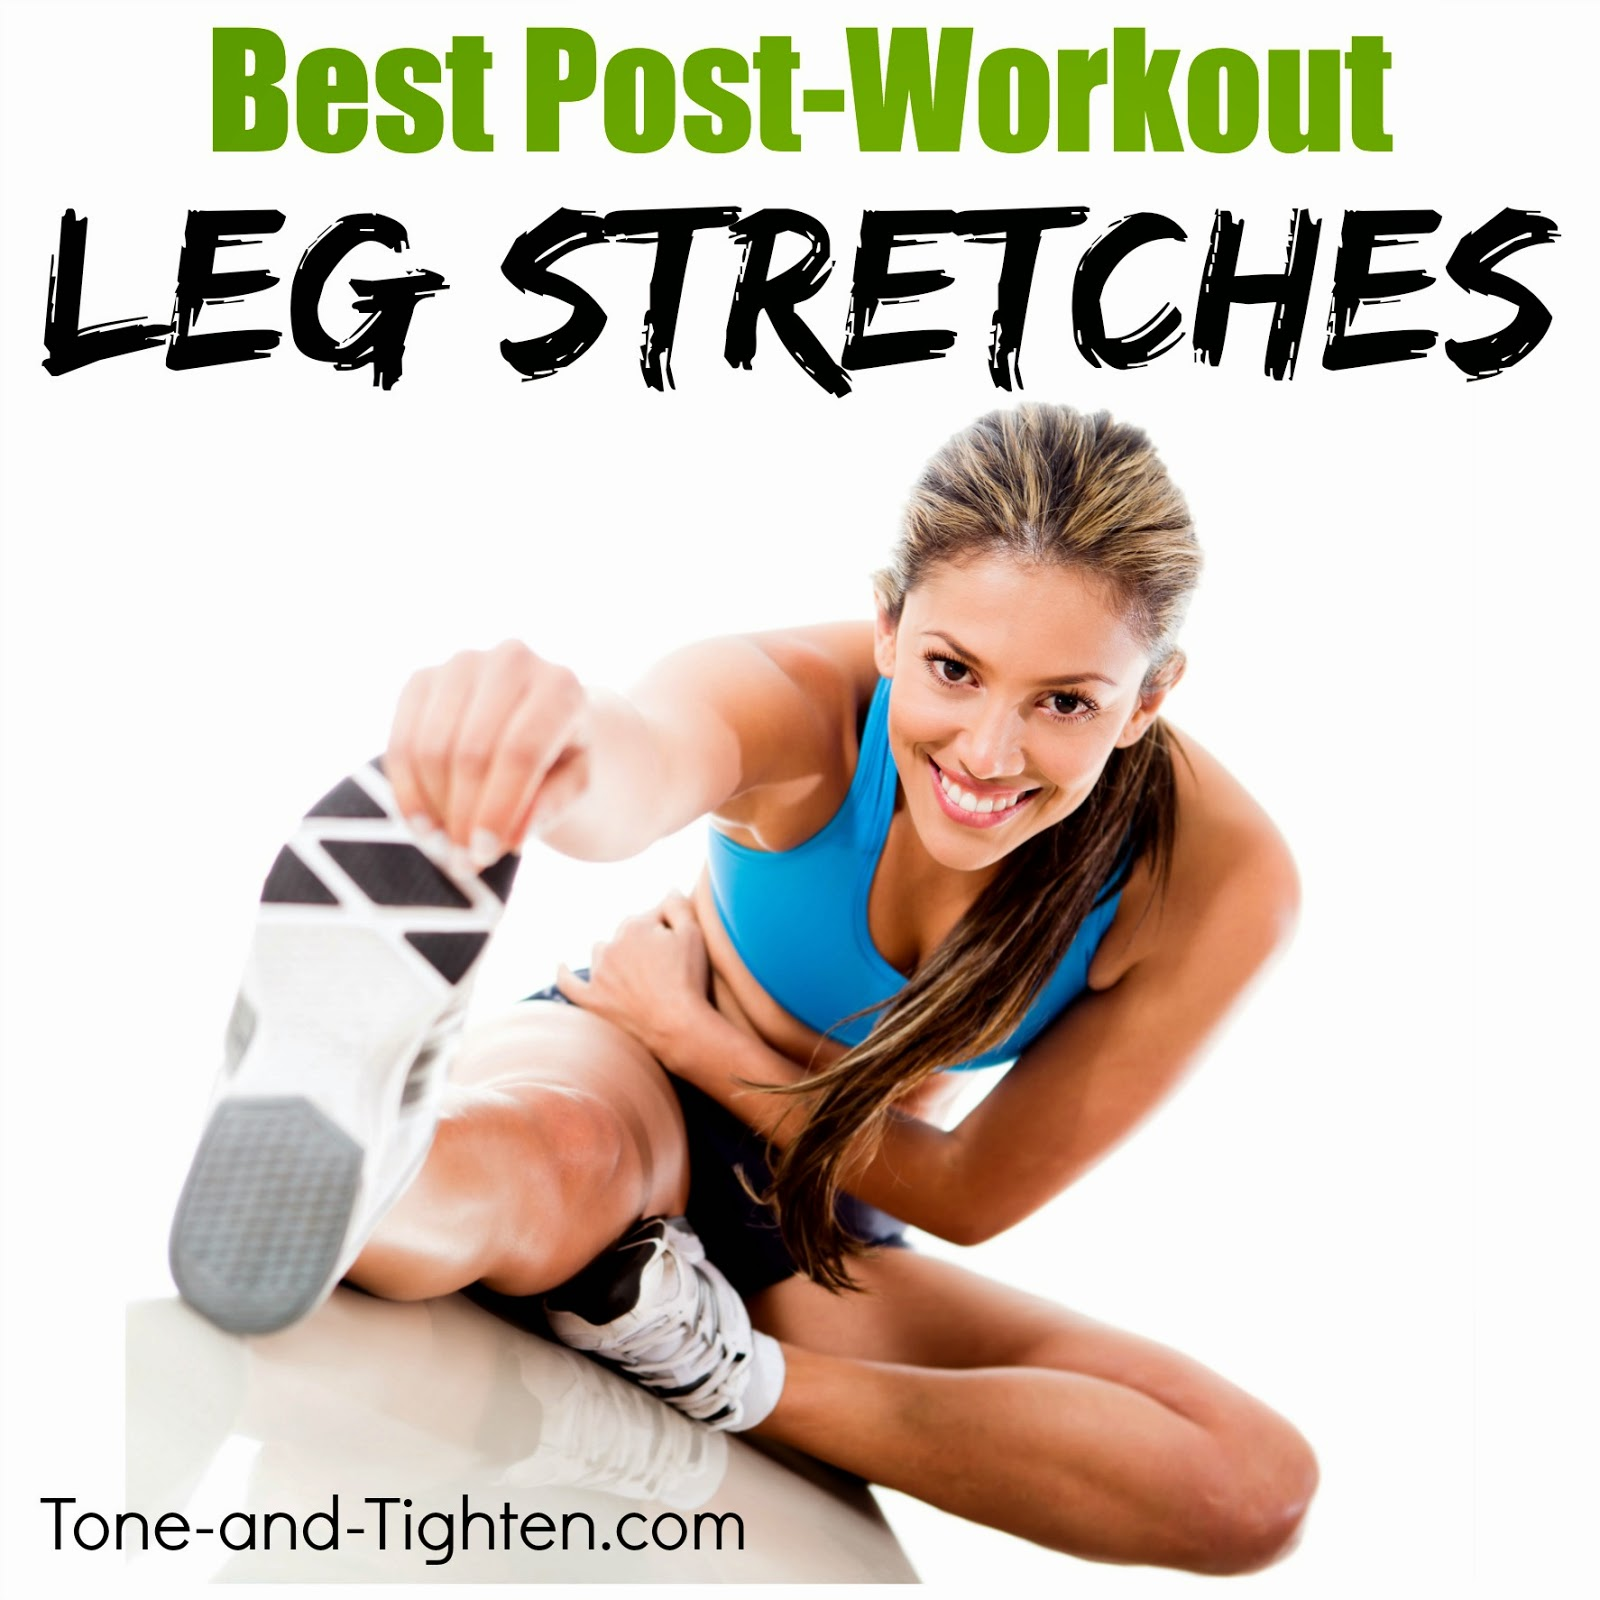 best leg stretches after workout post exercise tone and tighten1